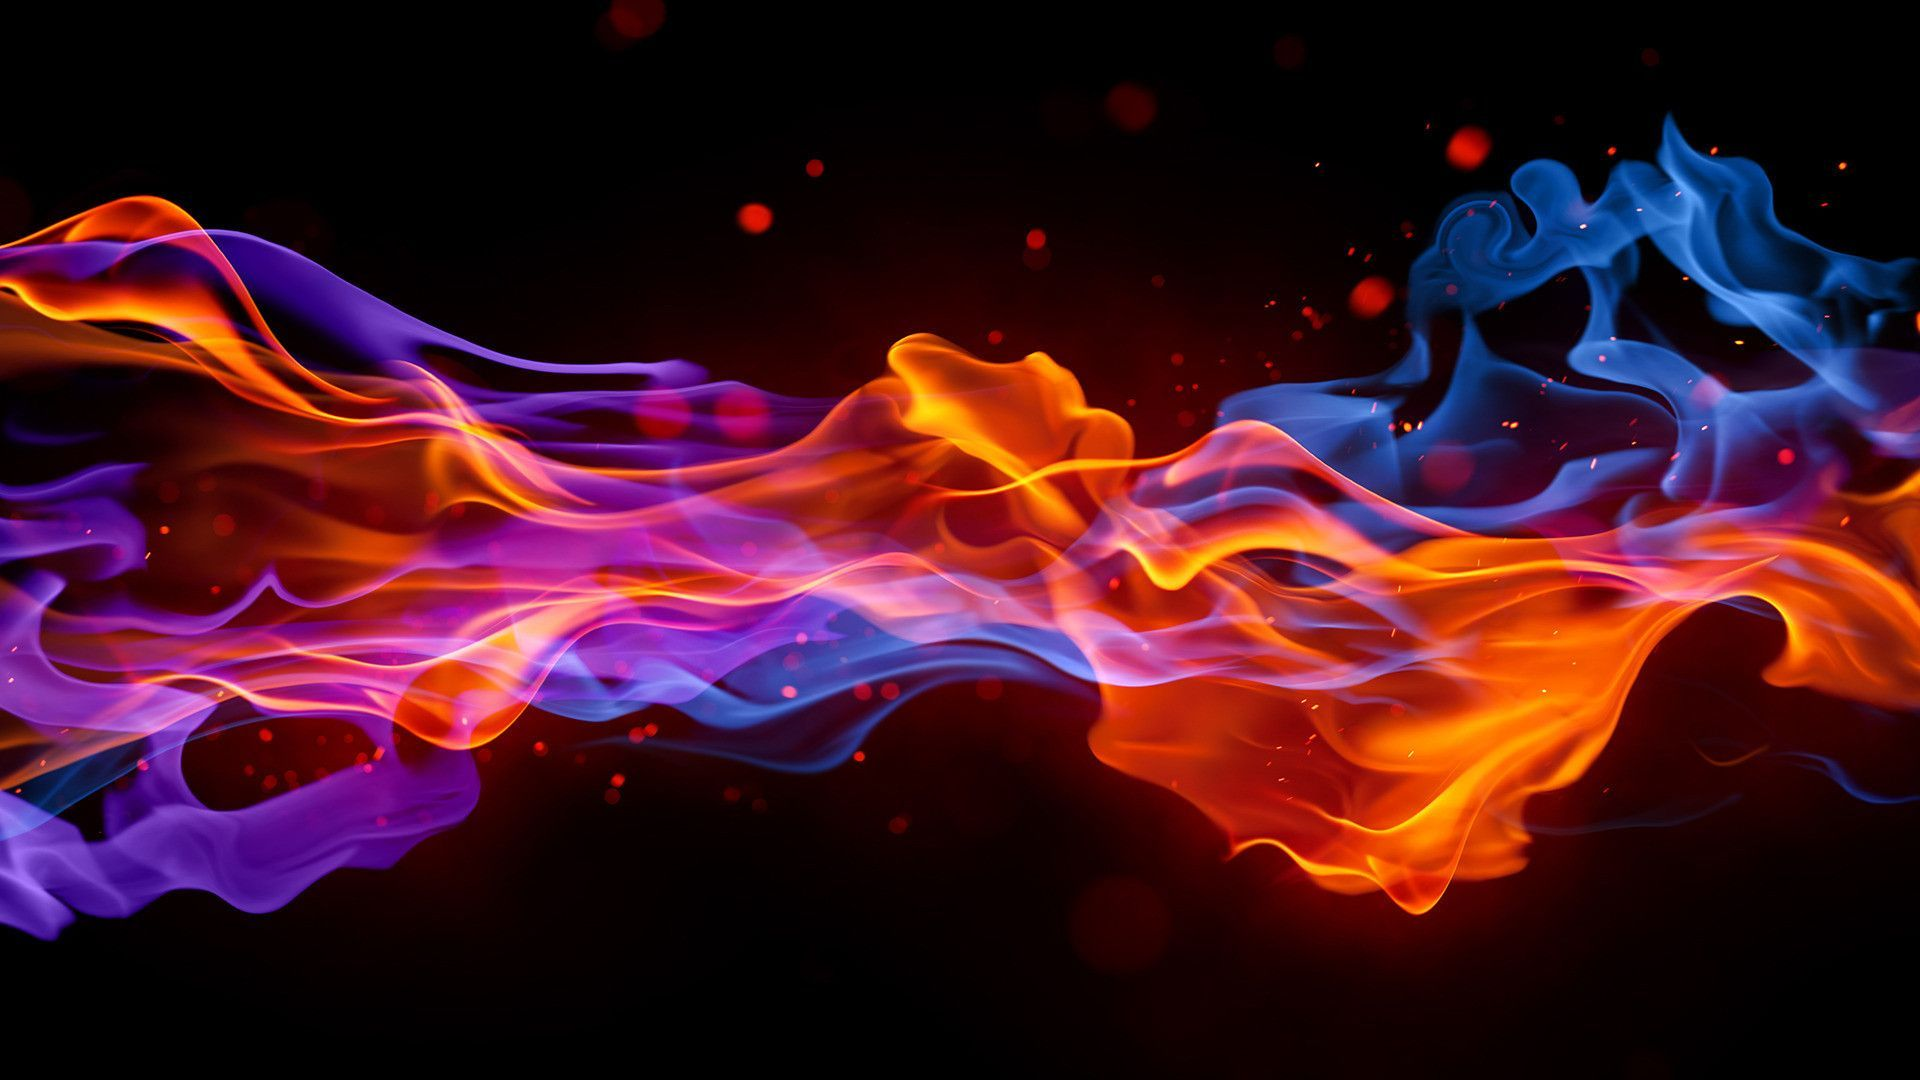 HD Fire Wallpaper